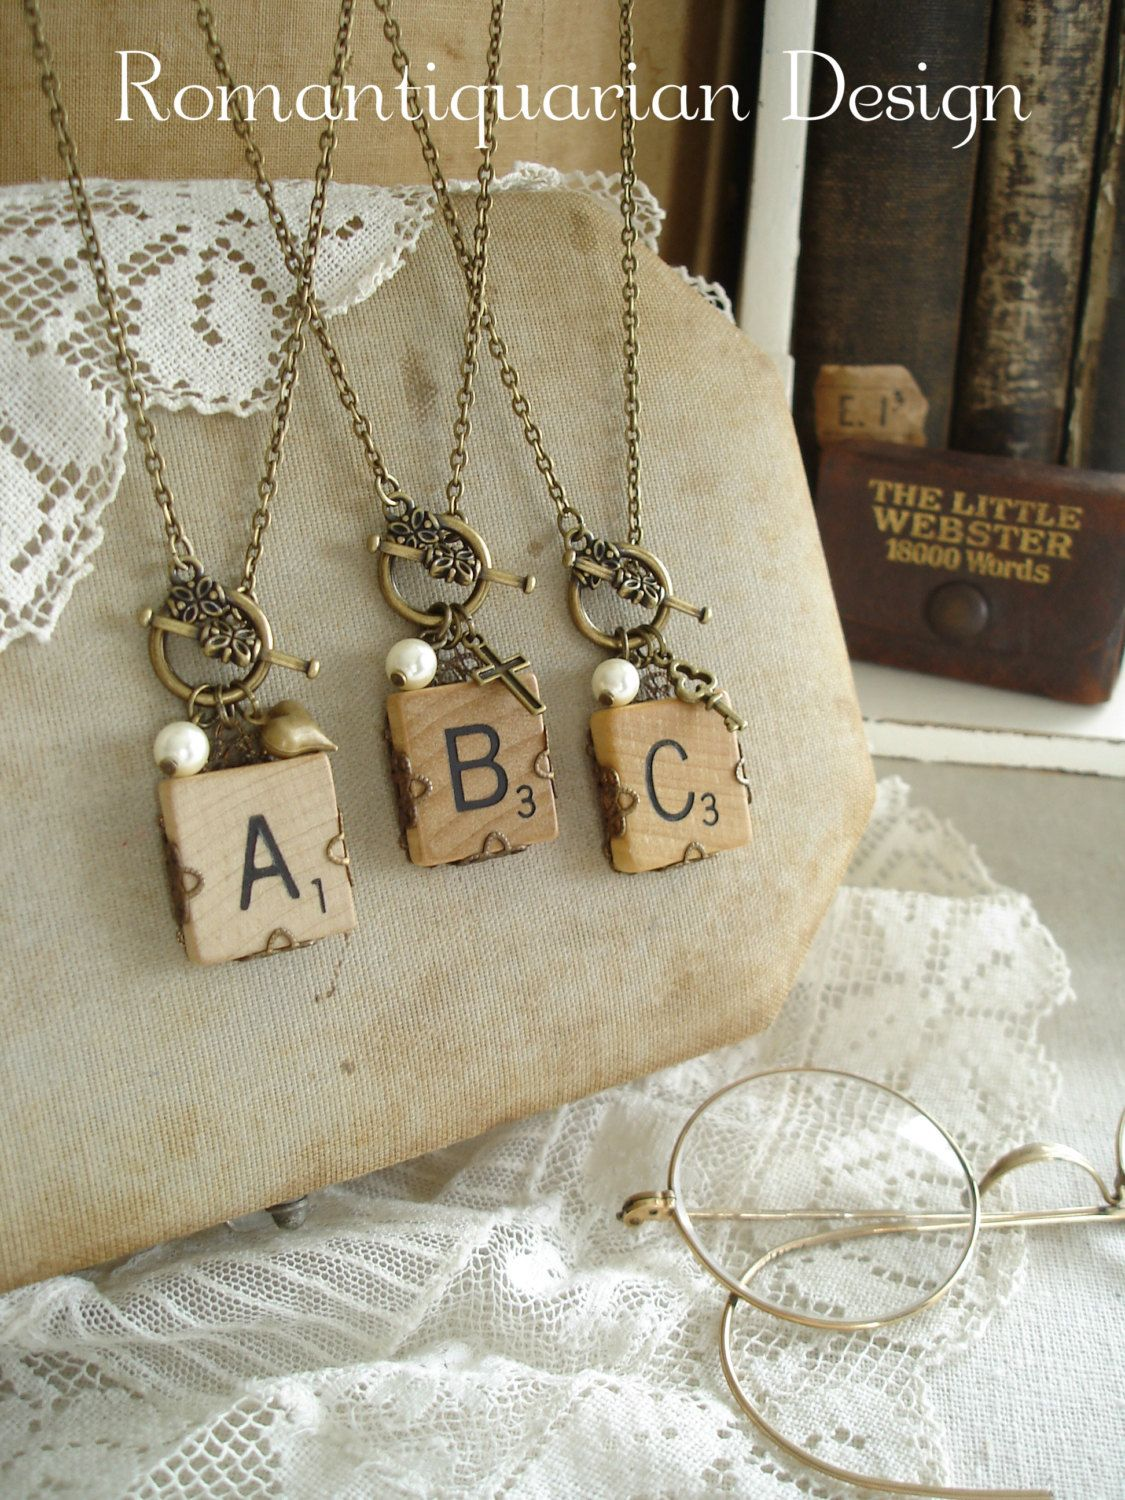 Scrabble Letter Charm Necklace By Romantiquariandesign On Etsy Repurposed Jewelry Initial